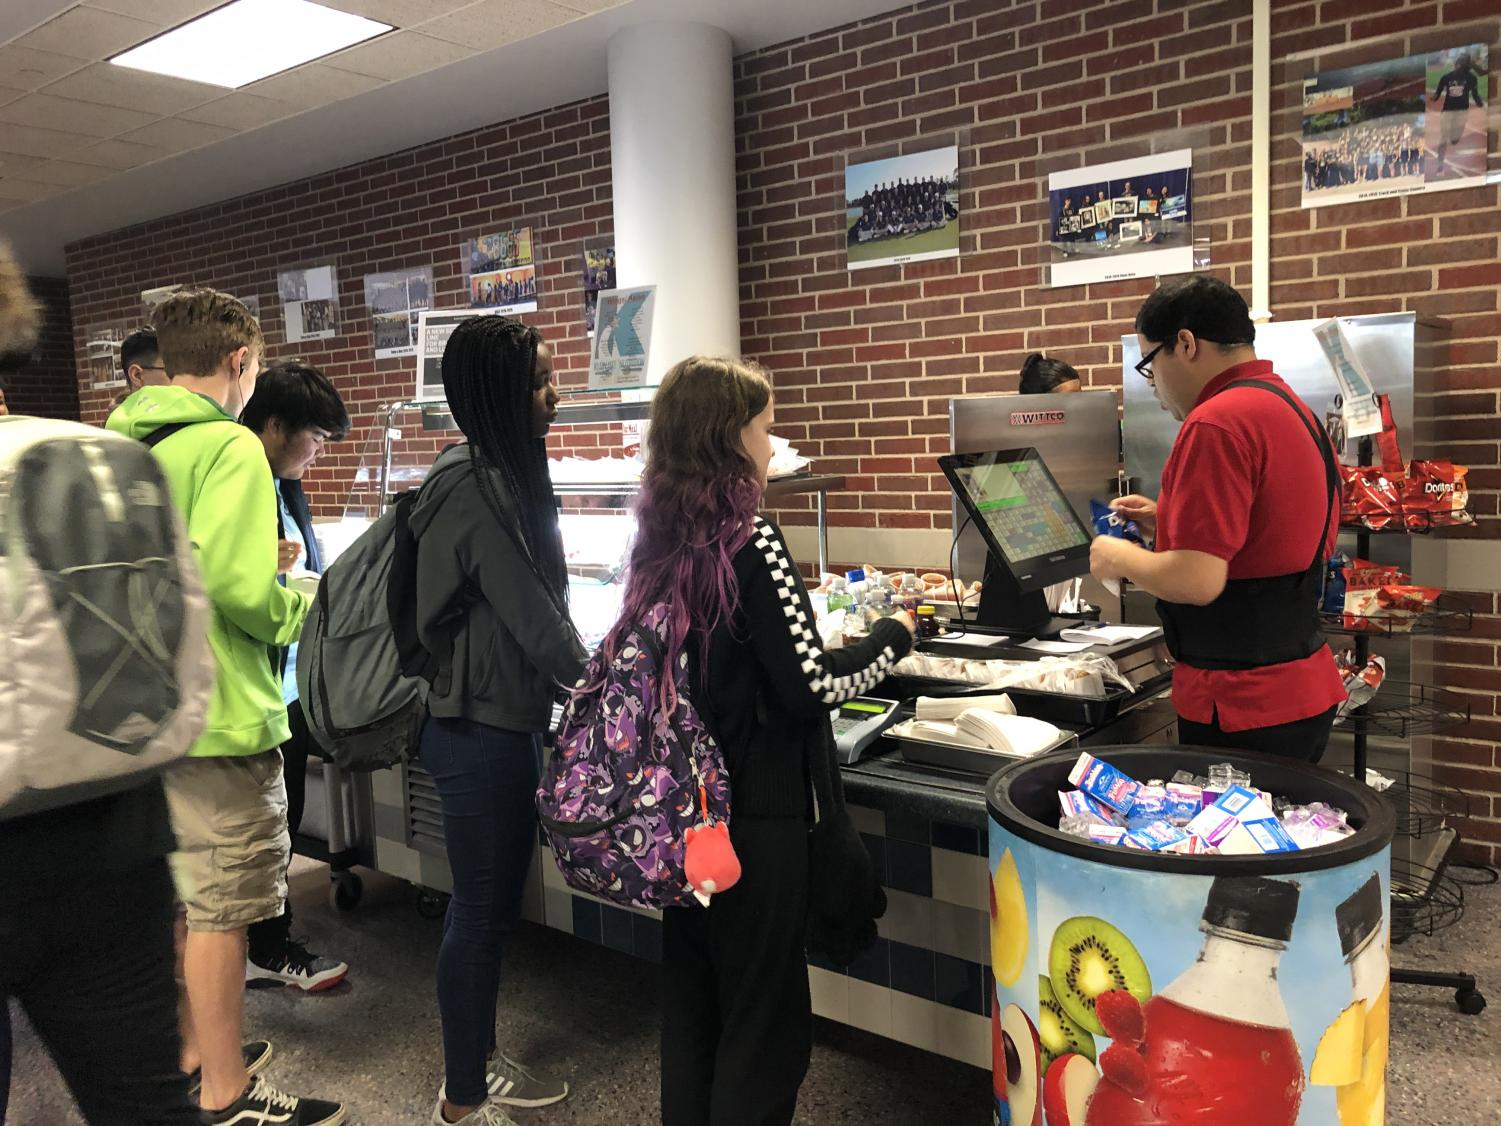 Students line up to buy lunch from the new line in the cafeteria.